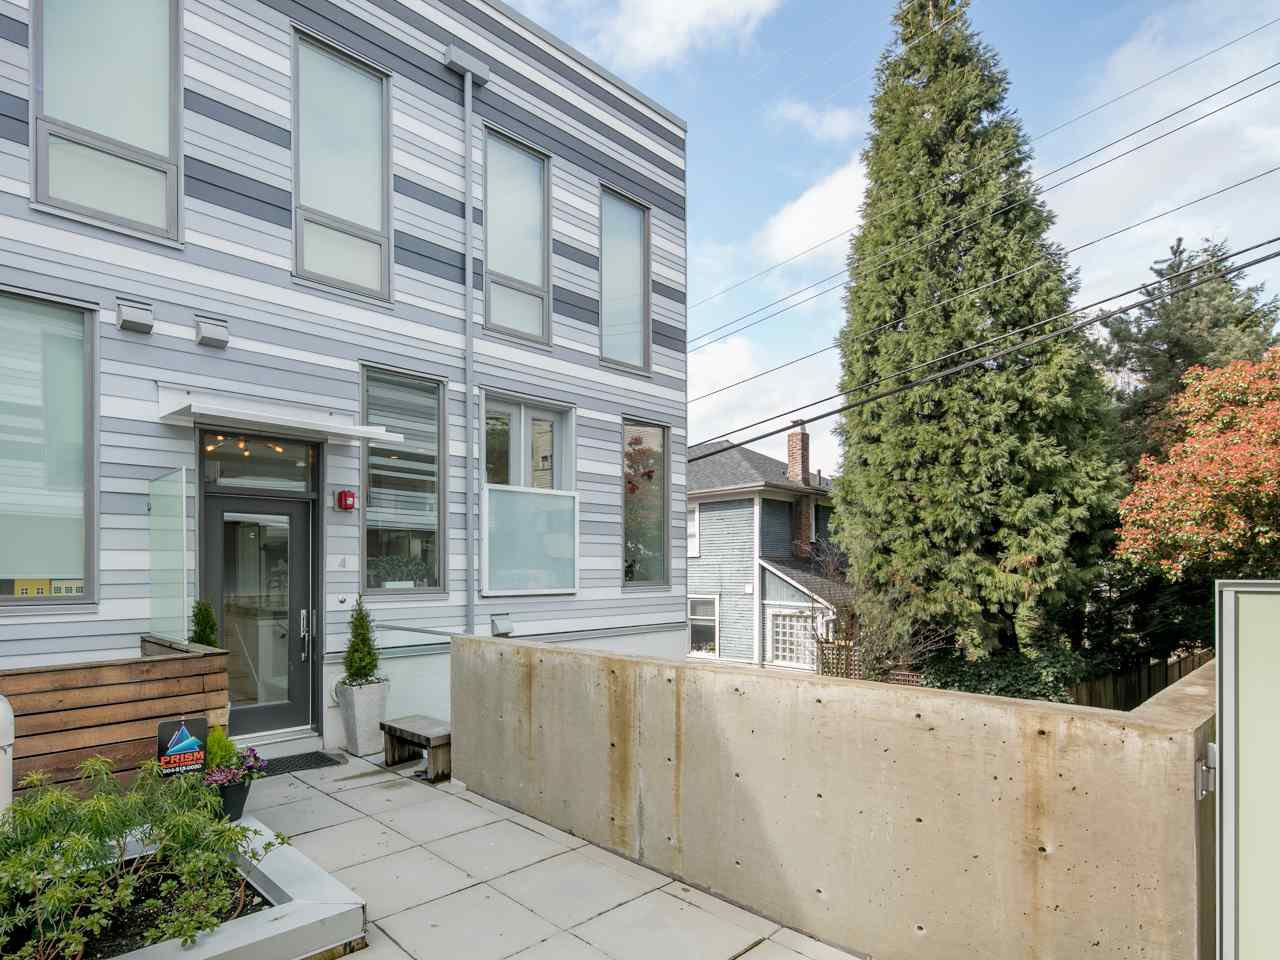 Photo 2: Photos: 4 1411 E 1ST AVENUE in Vancouver: Grandview VE Townhouse for sale (Vancouver East)  : MLS®# R2254853